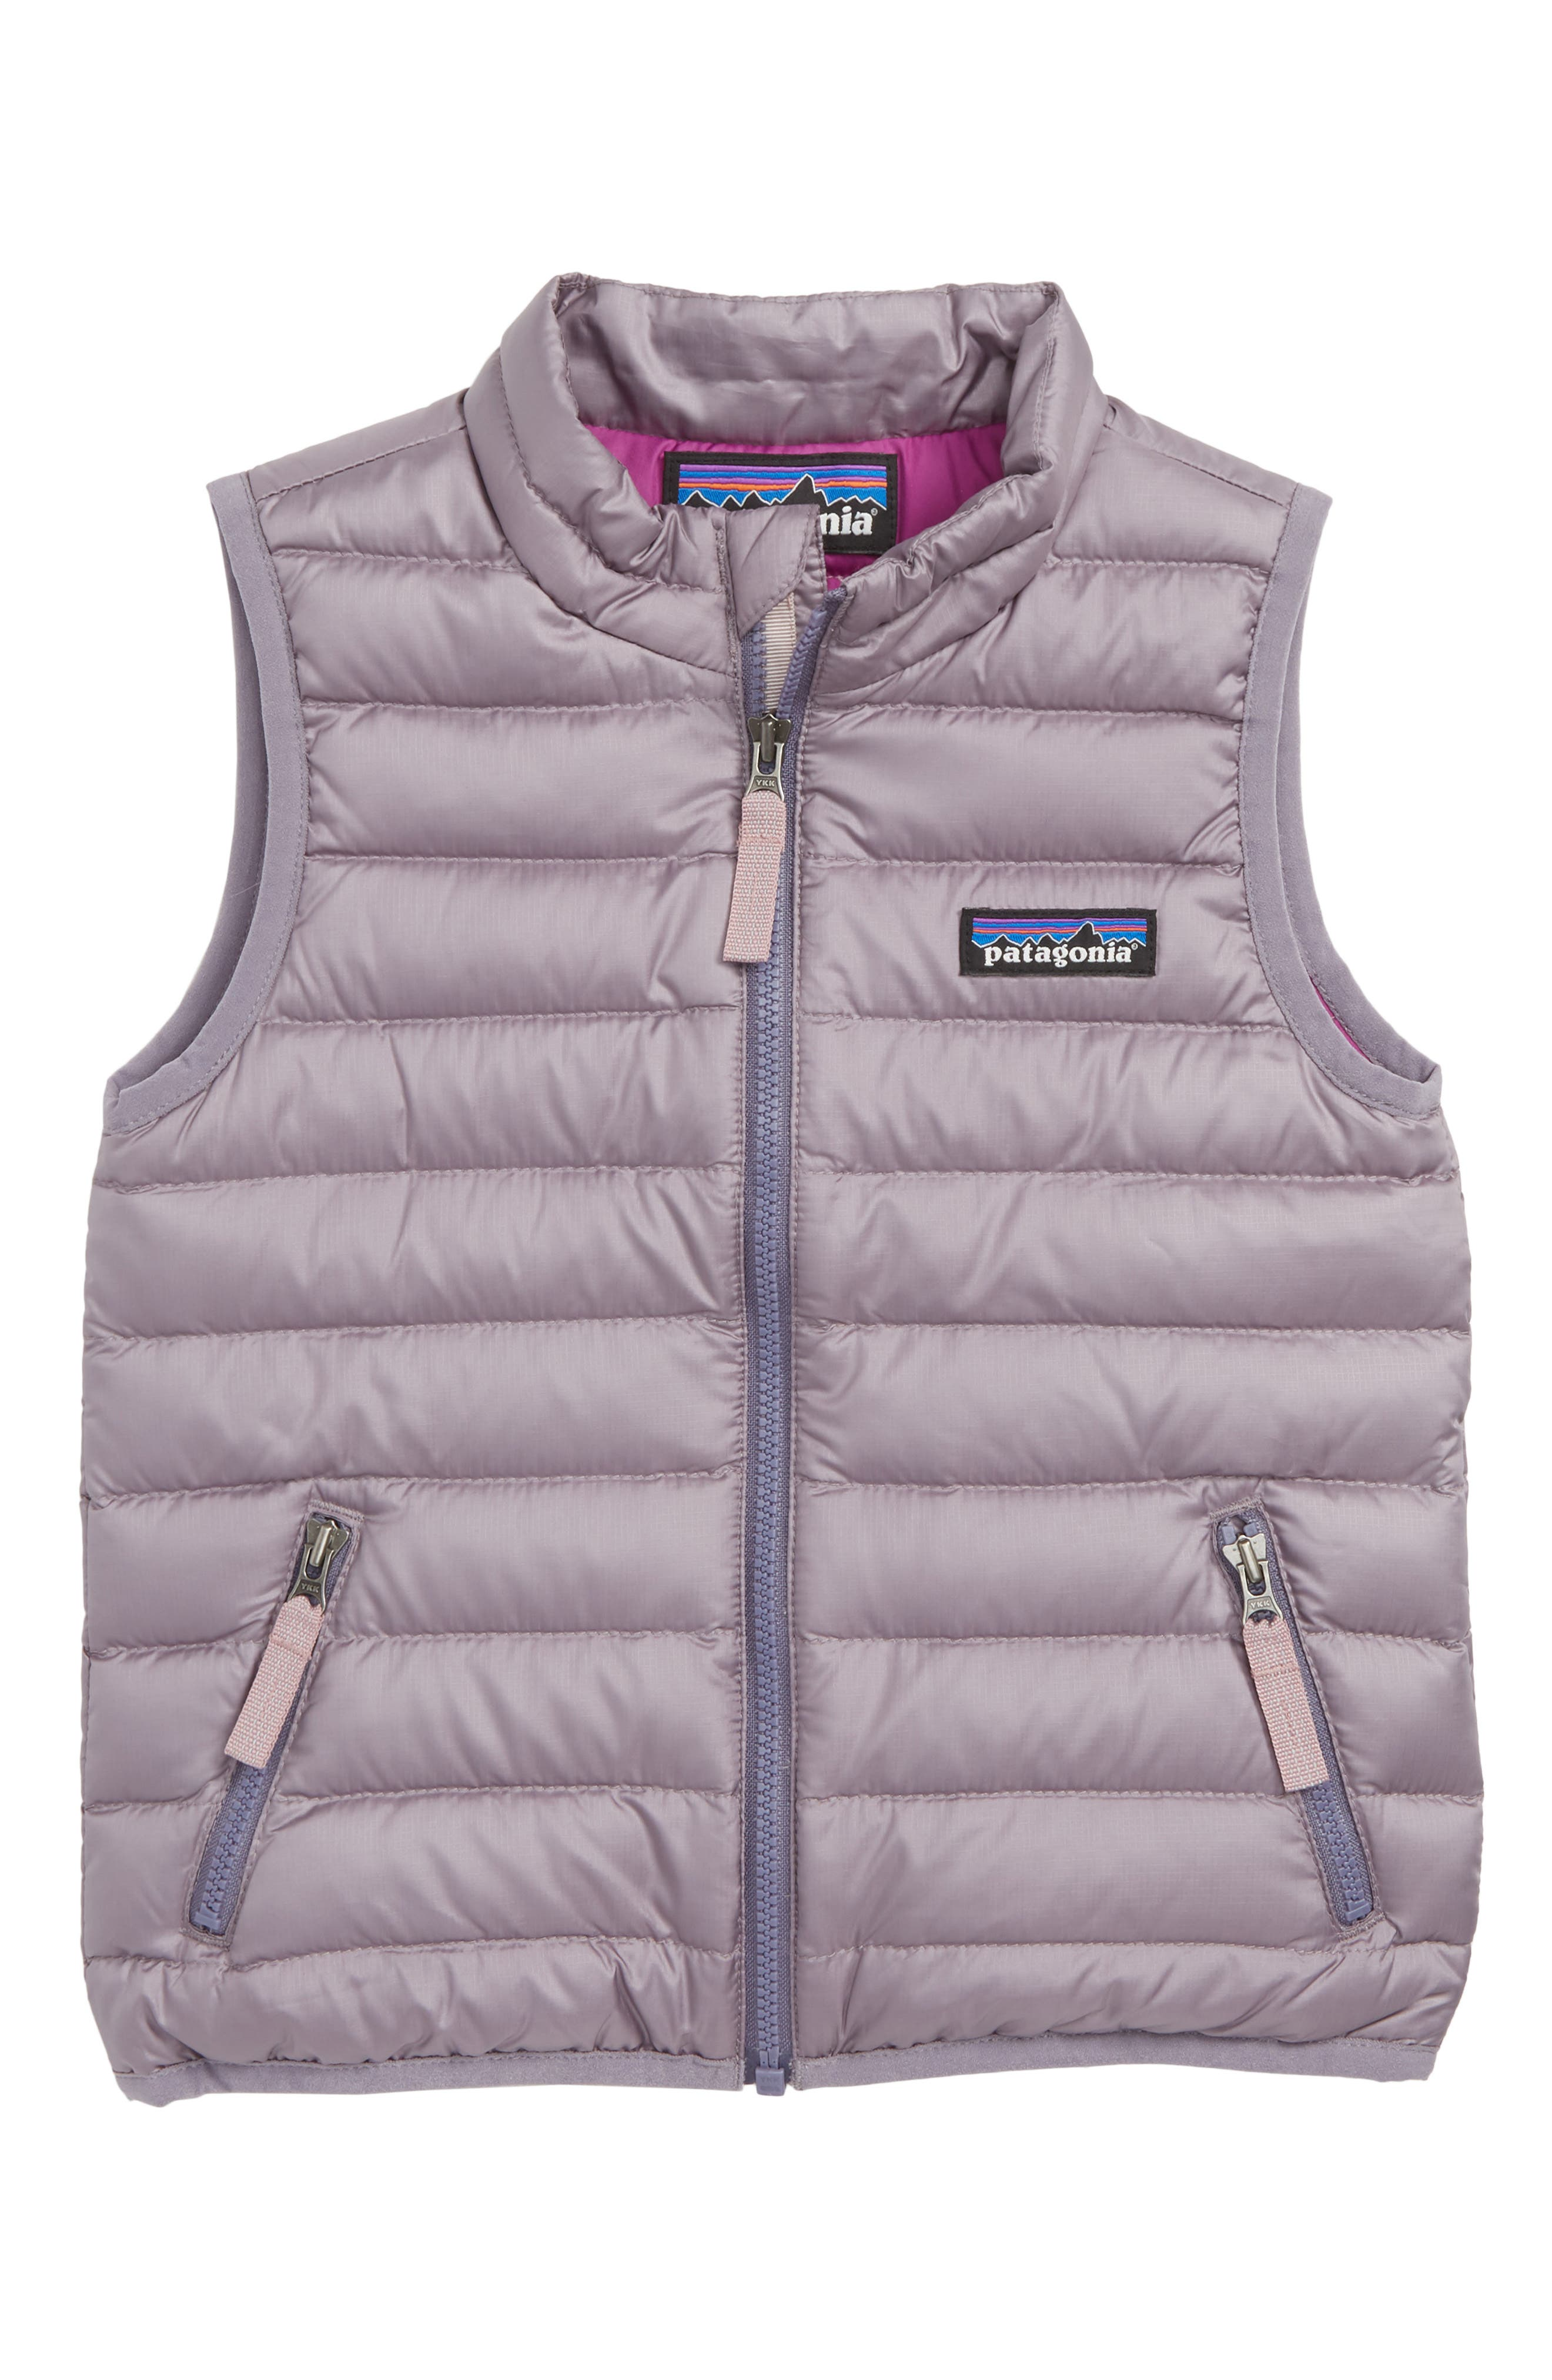 600-Fill Down Sweater Vest,                             Main thumbnail 1, color,                             SMOKEY VIOLET